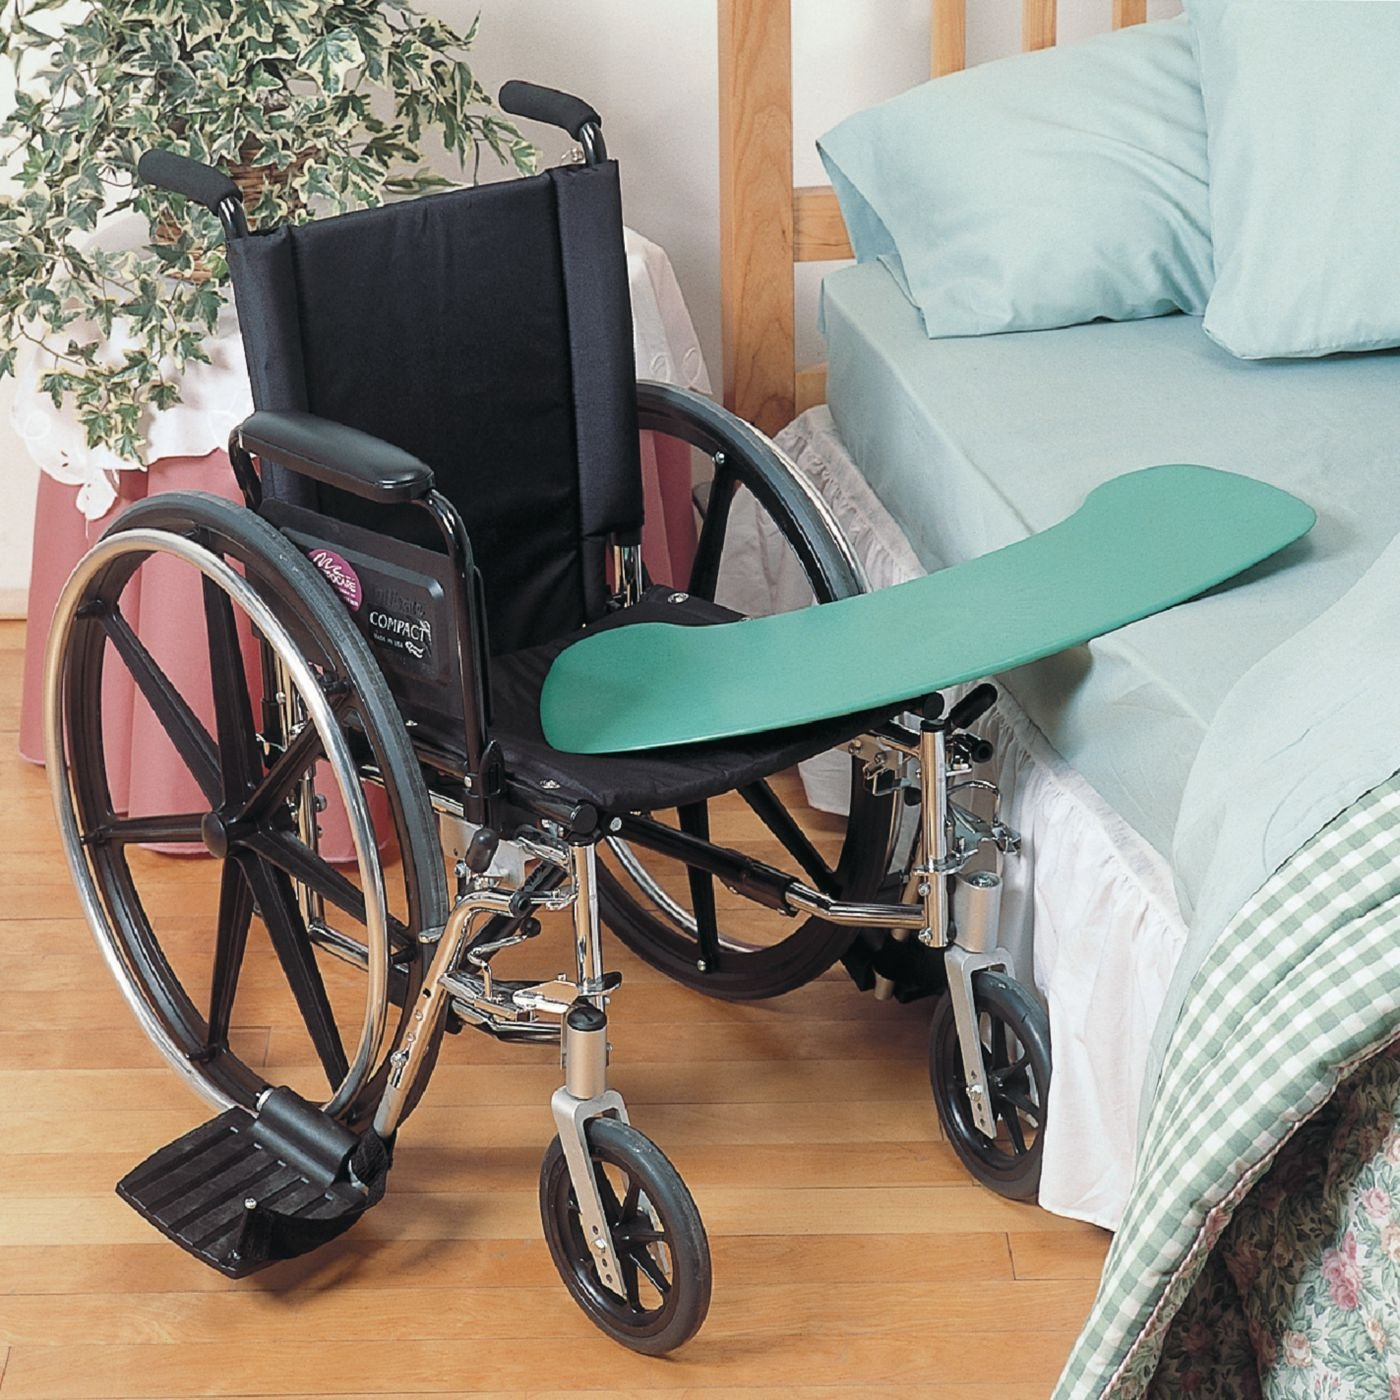 Amazon.com: Days Curved Transfer Board for Wheelchair Users ...